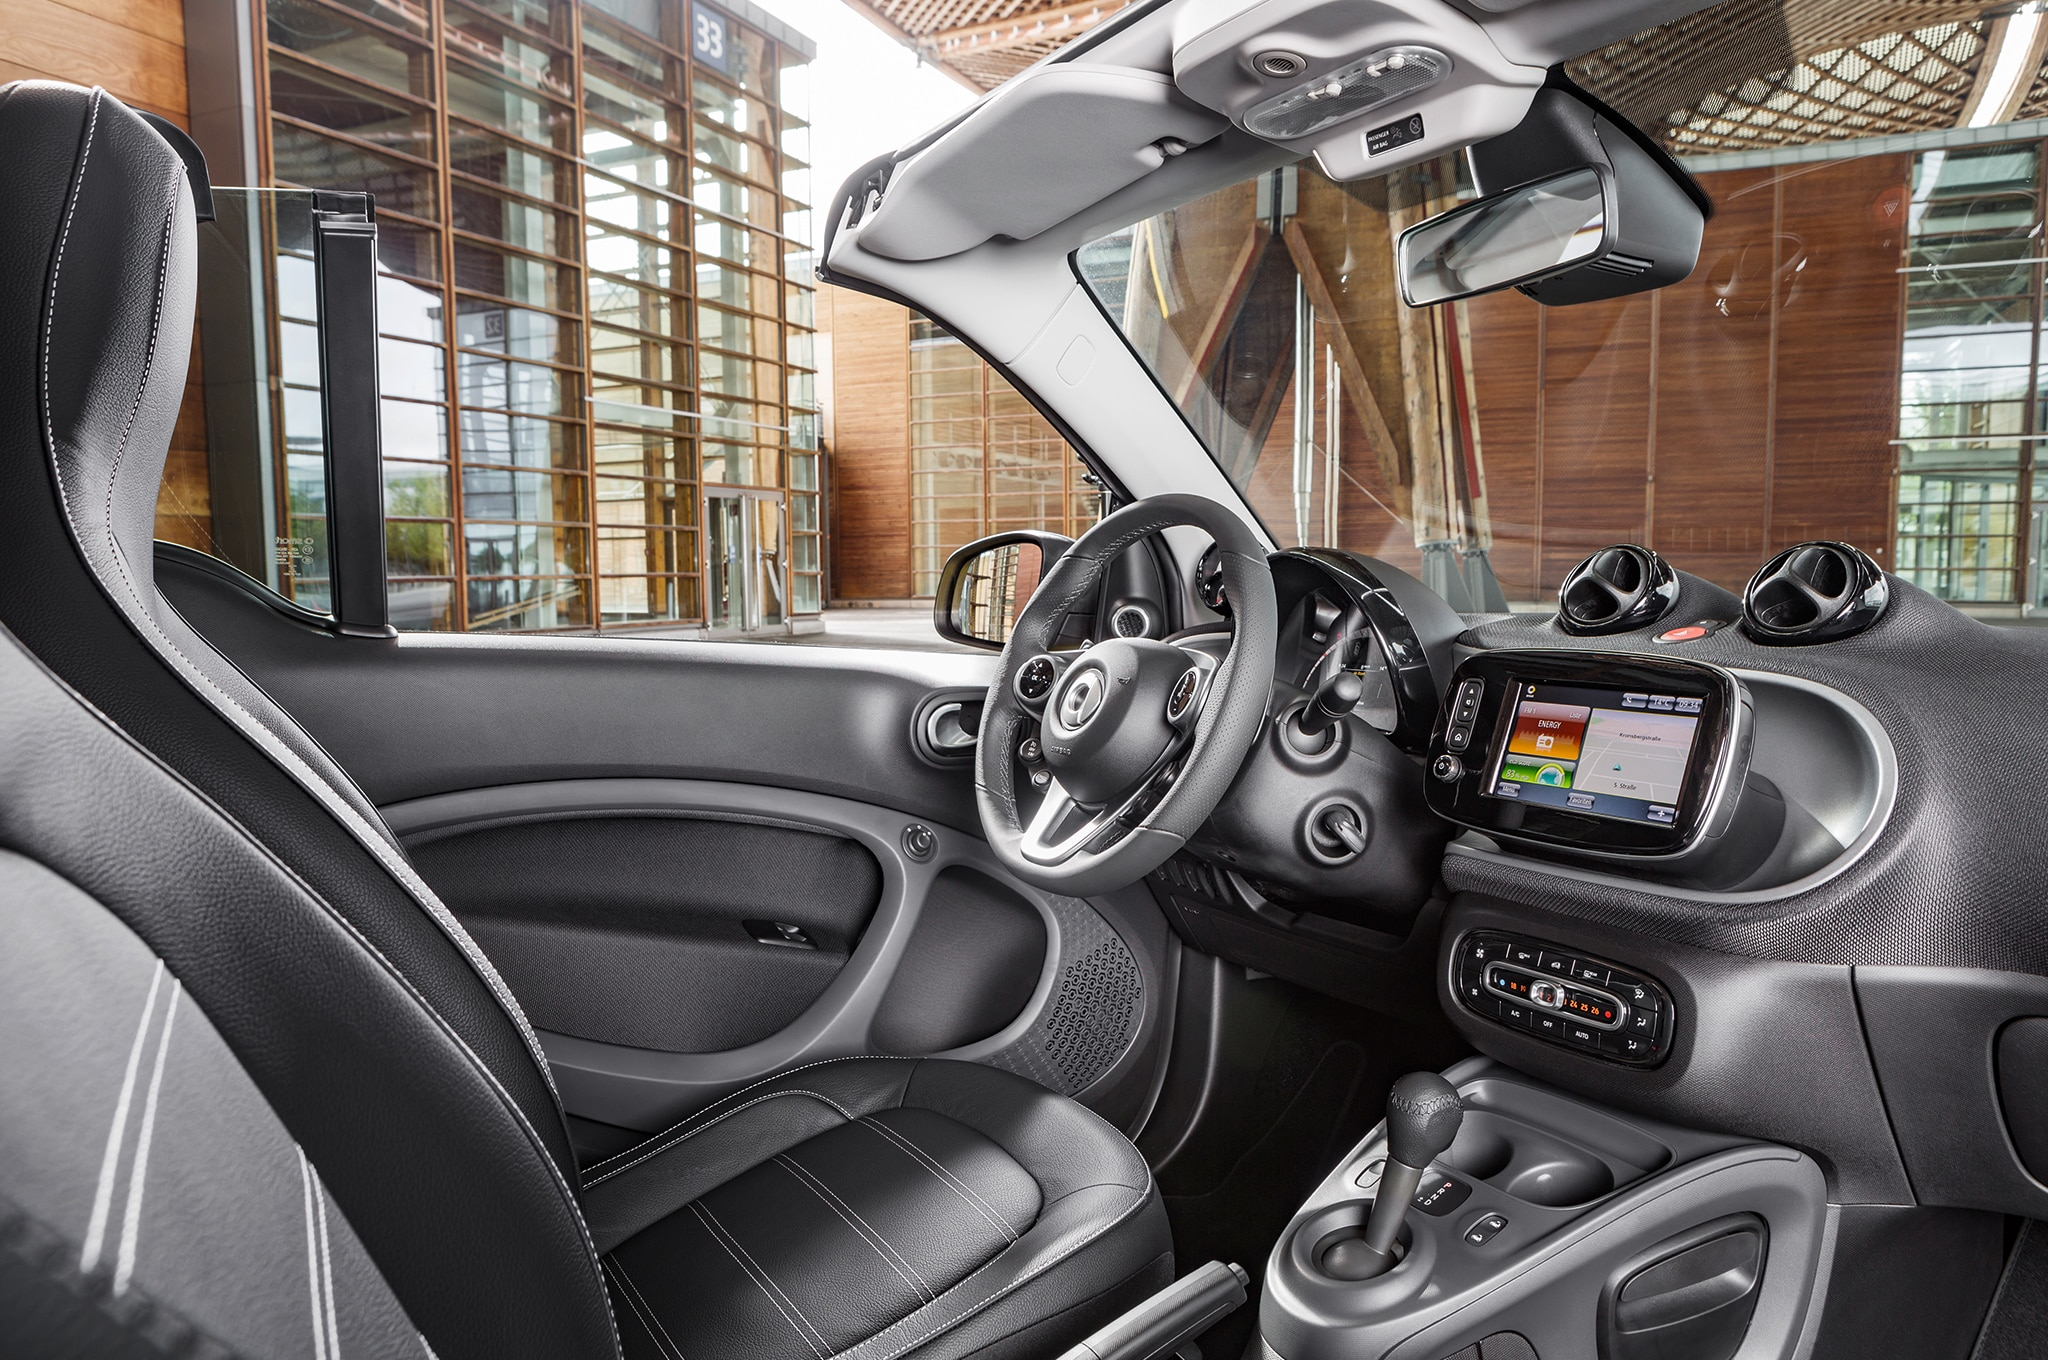 2017 Smart Fortwo Cabriolet interior 1